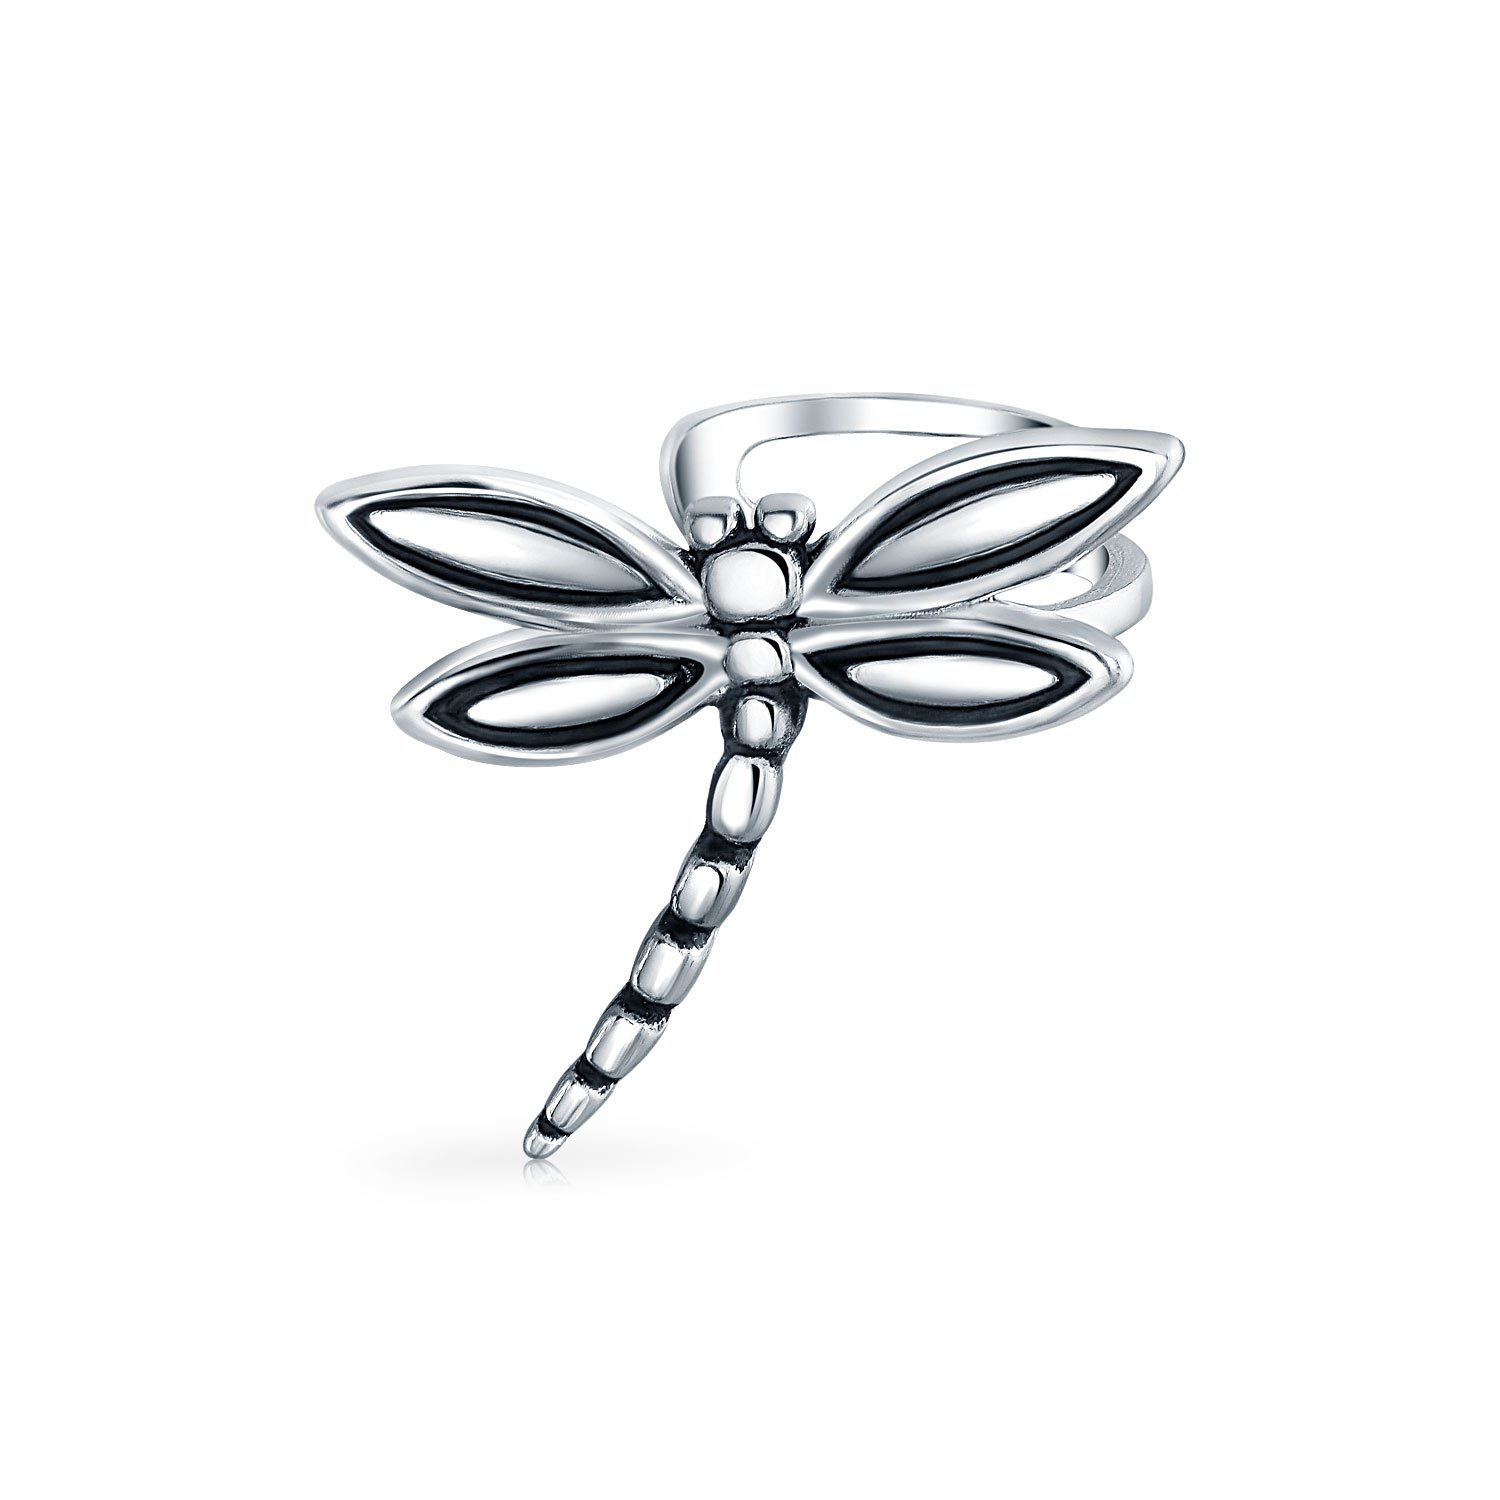 Bling Jewelry .925 Silver Dragonfly Motif Insect Ear Cuff Earrings PFS-12-6460